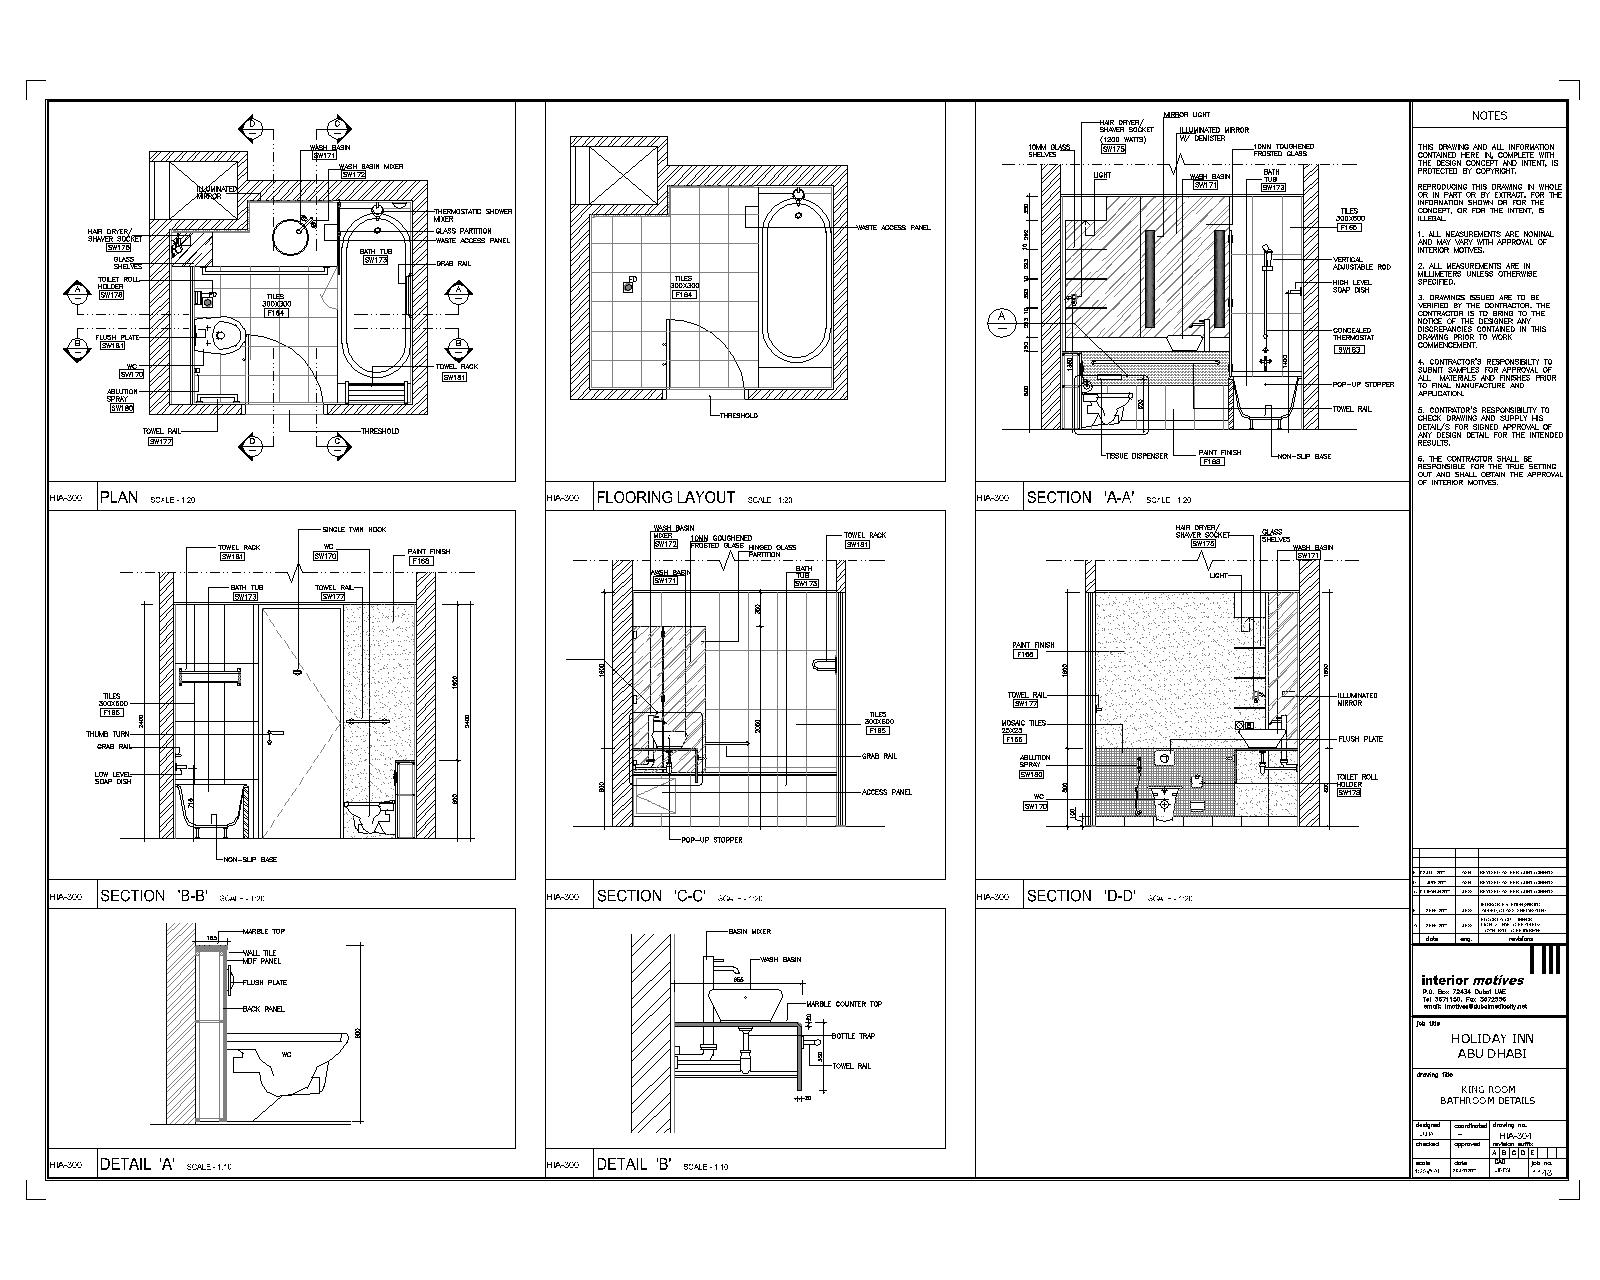 Autocad drawings detail by ashik ahammed at for Interior design cad free